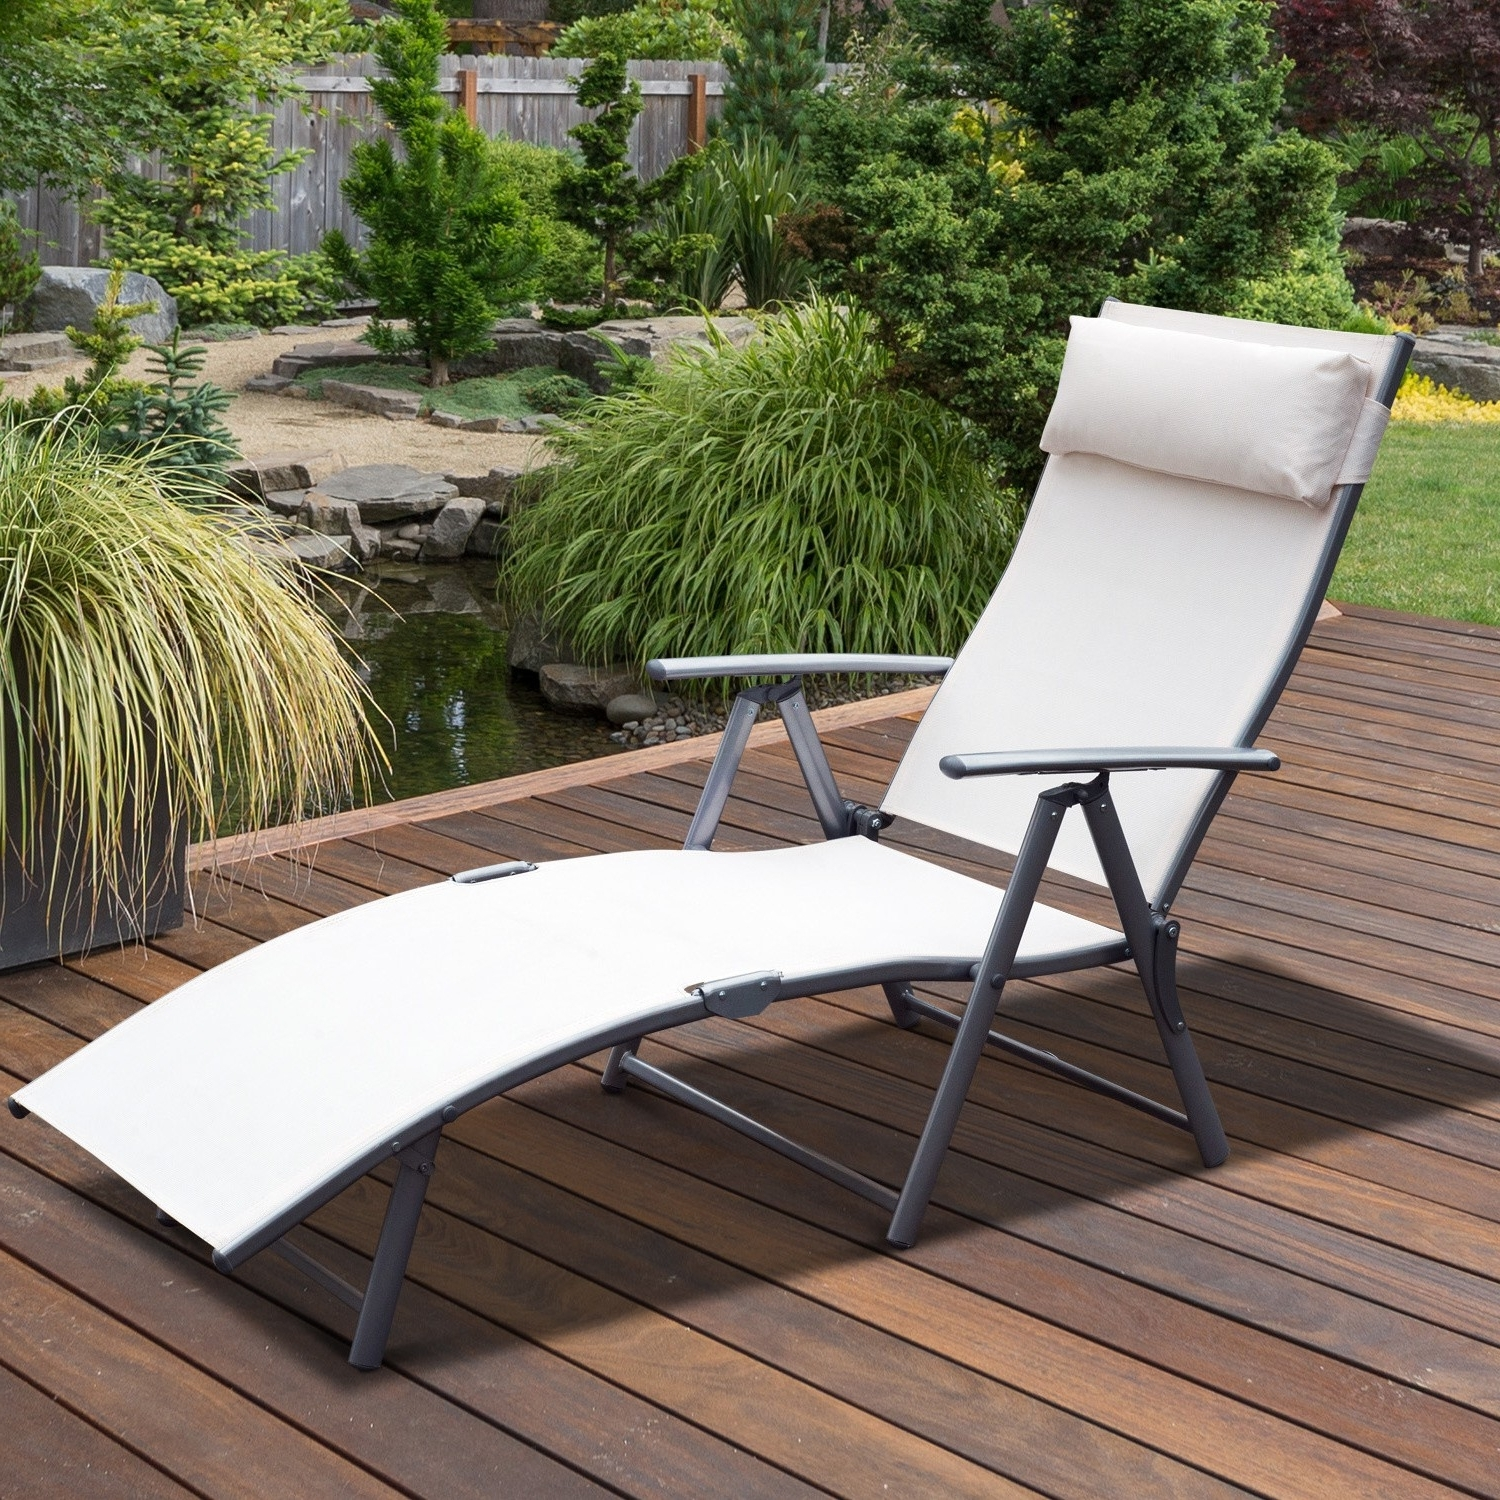 Heavy Duty Chaise Lounge Chairs With Well Known Lounge Chair : Chairs Patio Chairs For Large People Lounge Chairs (View 6 of 15)